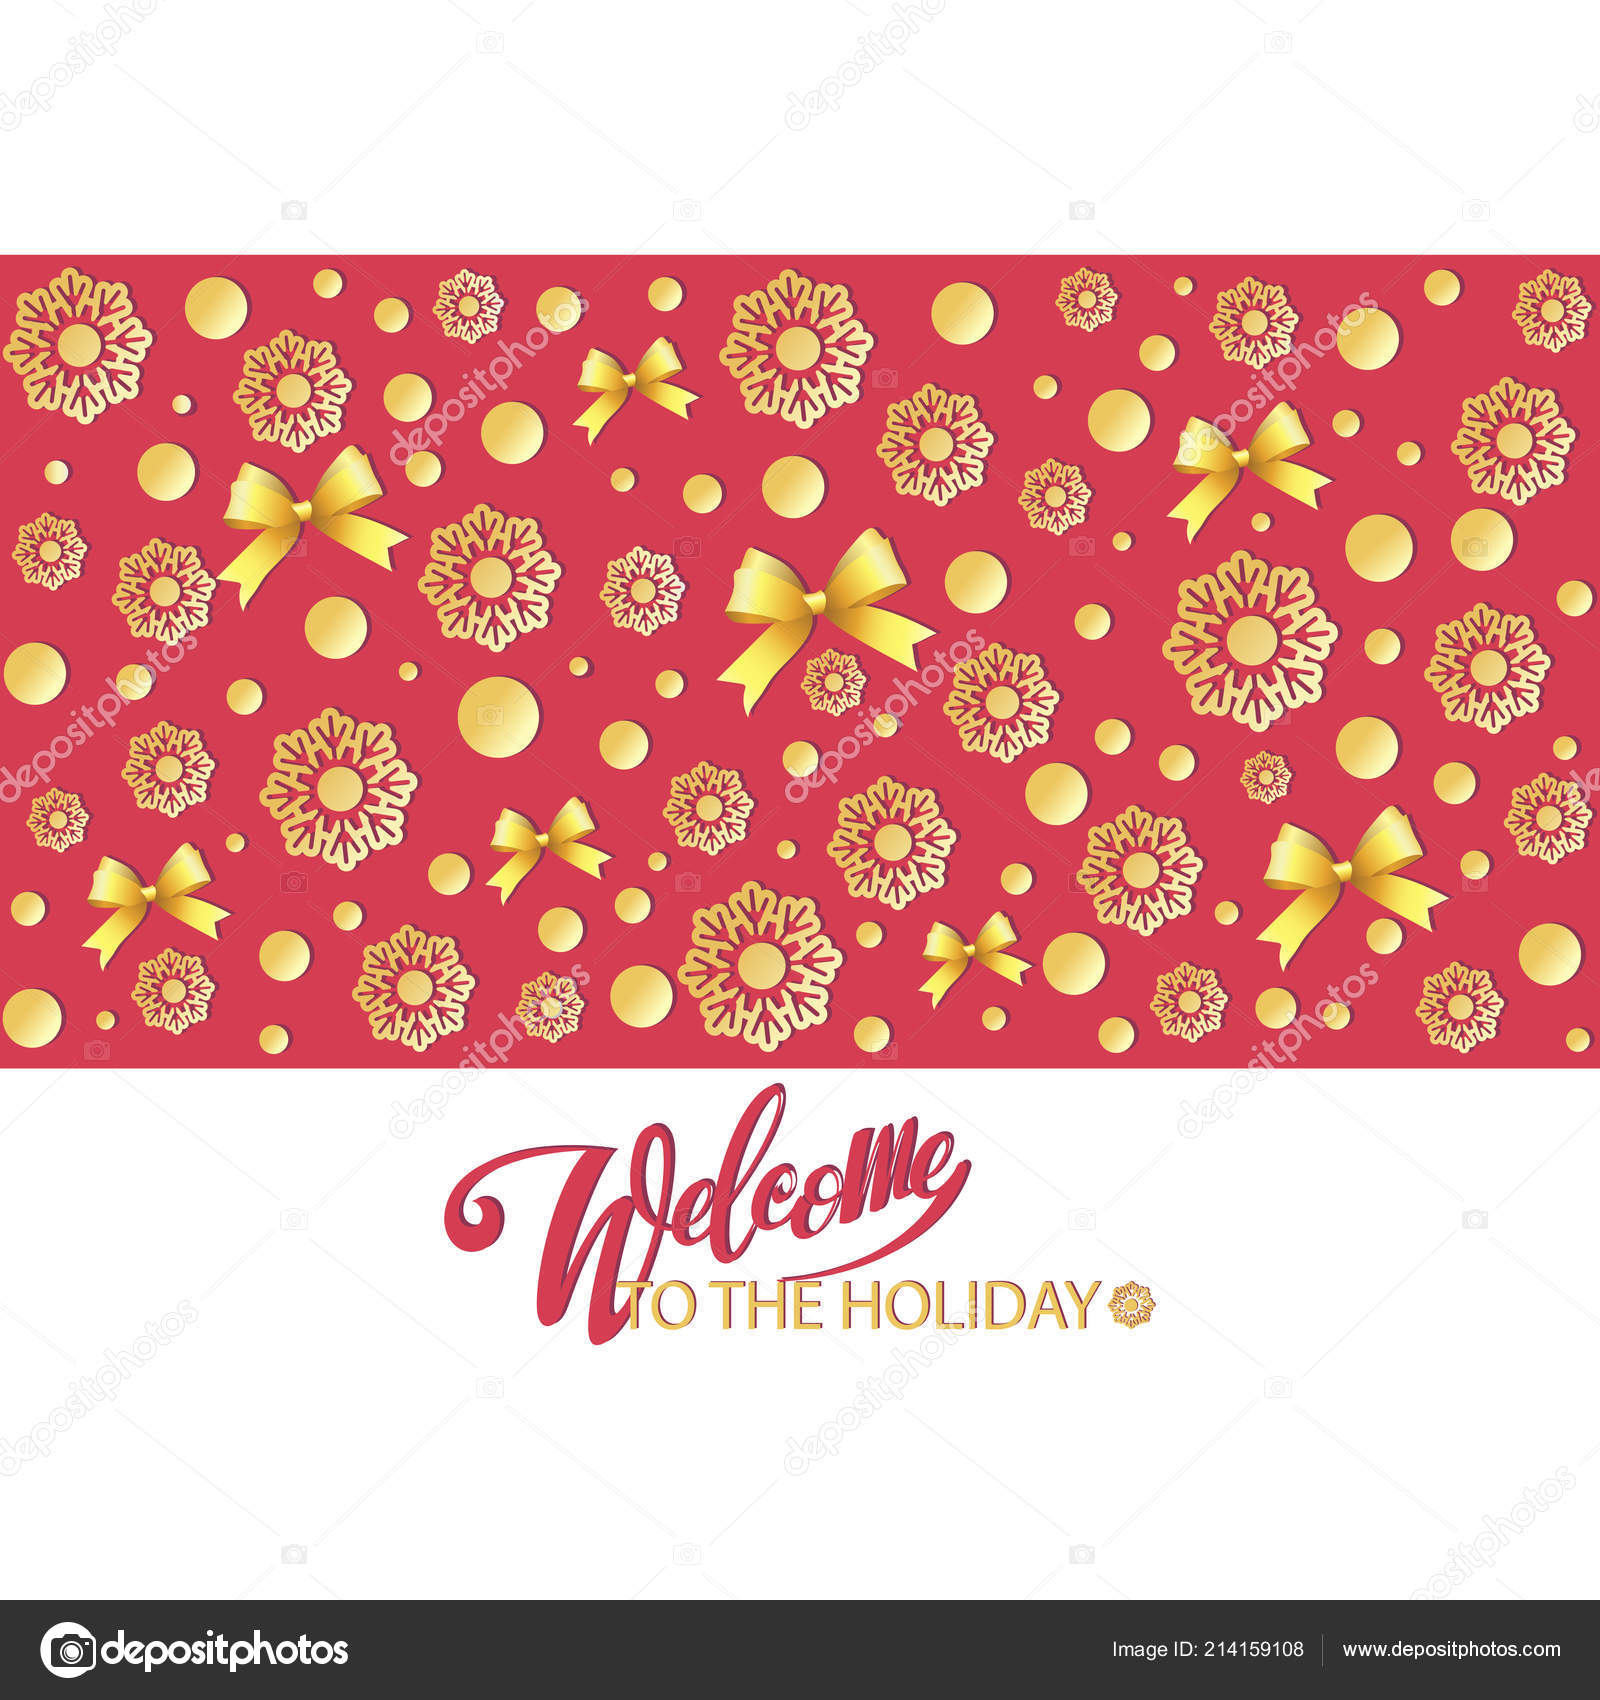 Welcome Holiday Invitation Snowflakes Bows Design Message